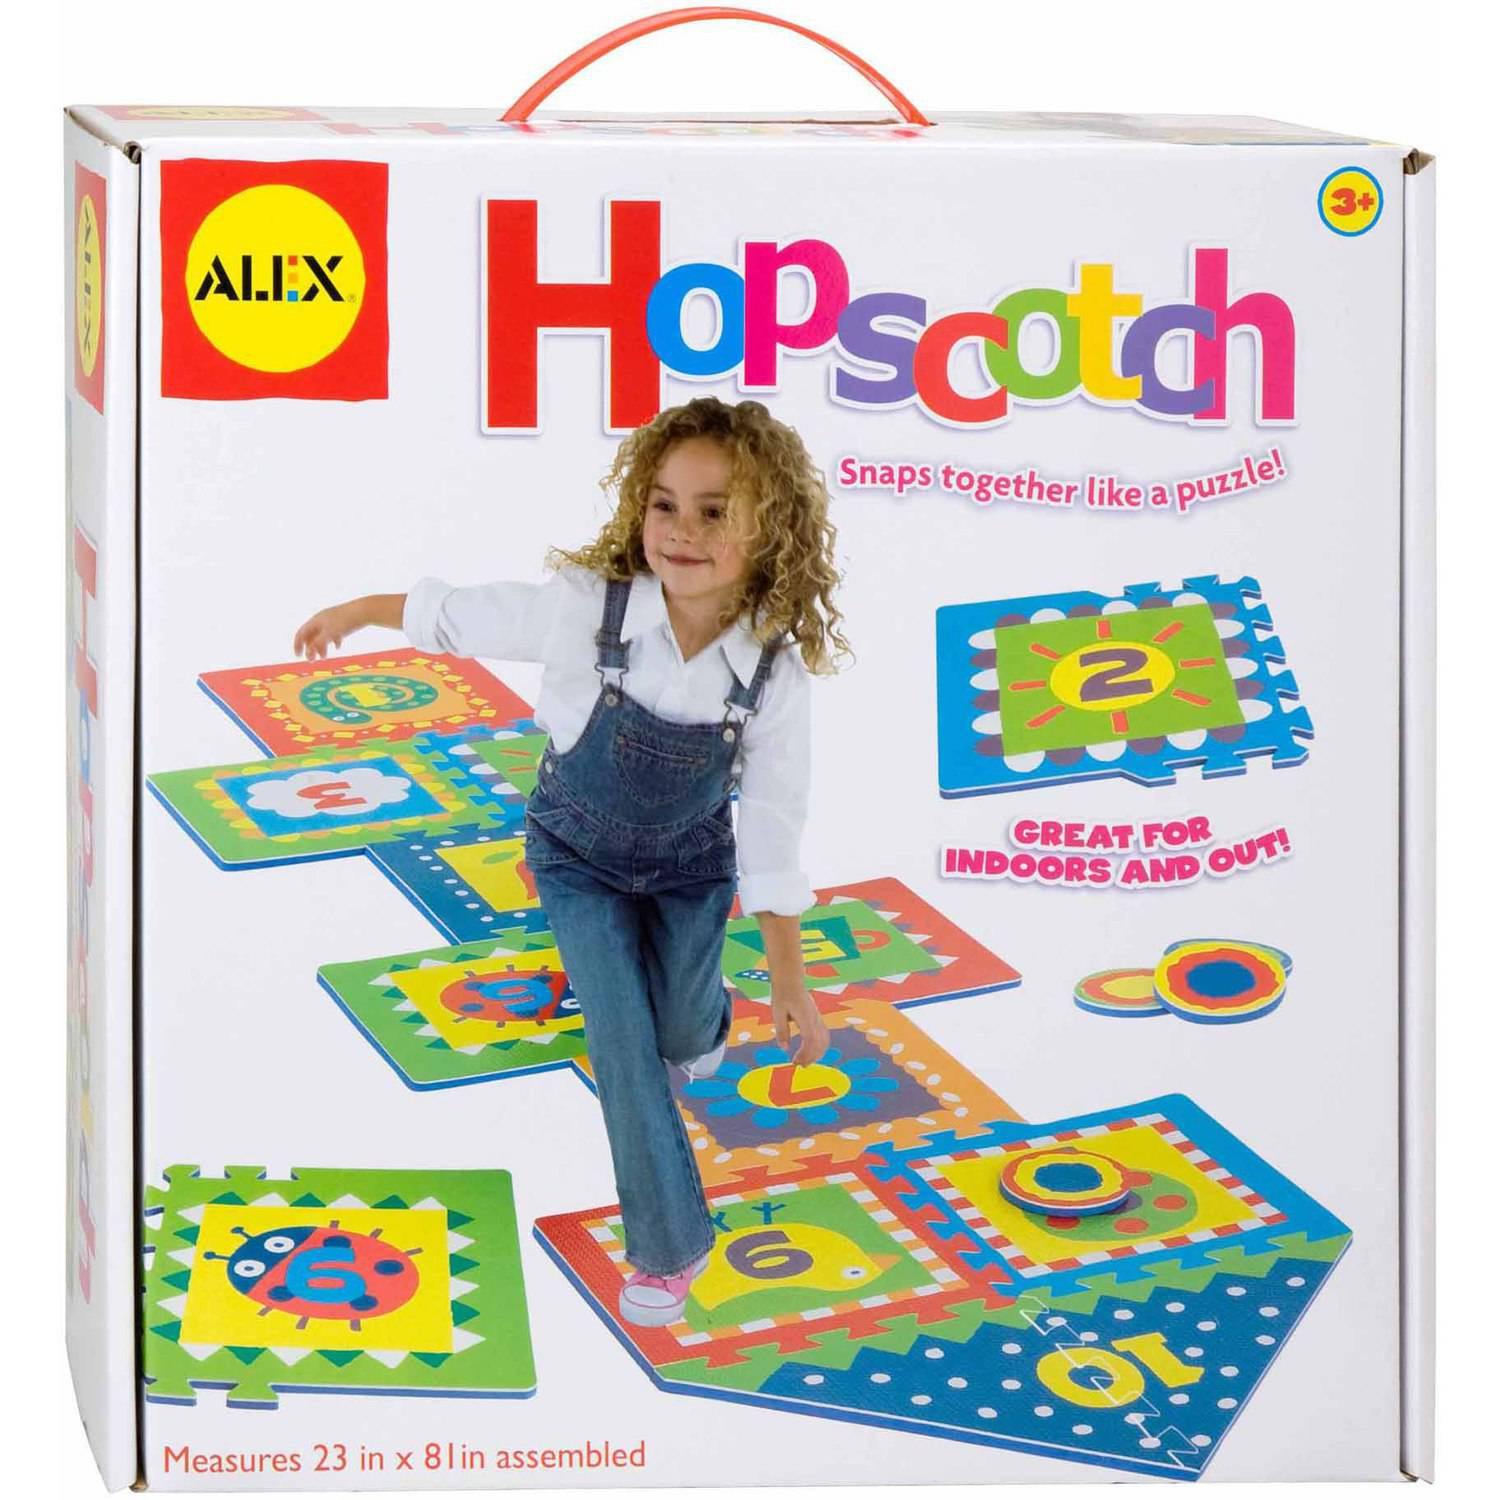 ALEX Toys Active Play Hopscotch with Snap Together Boards